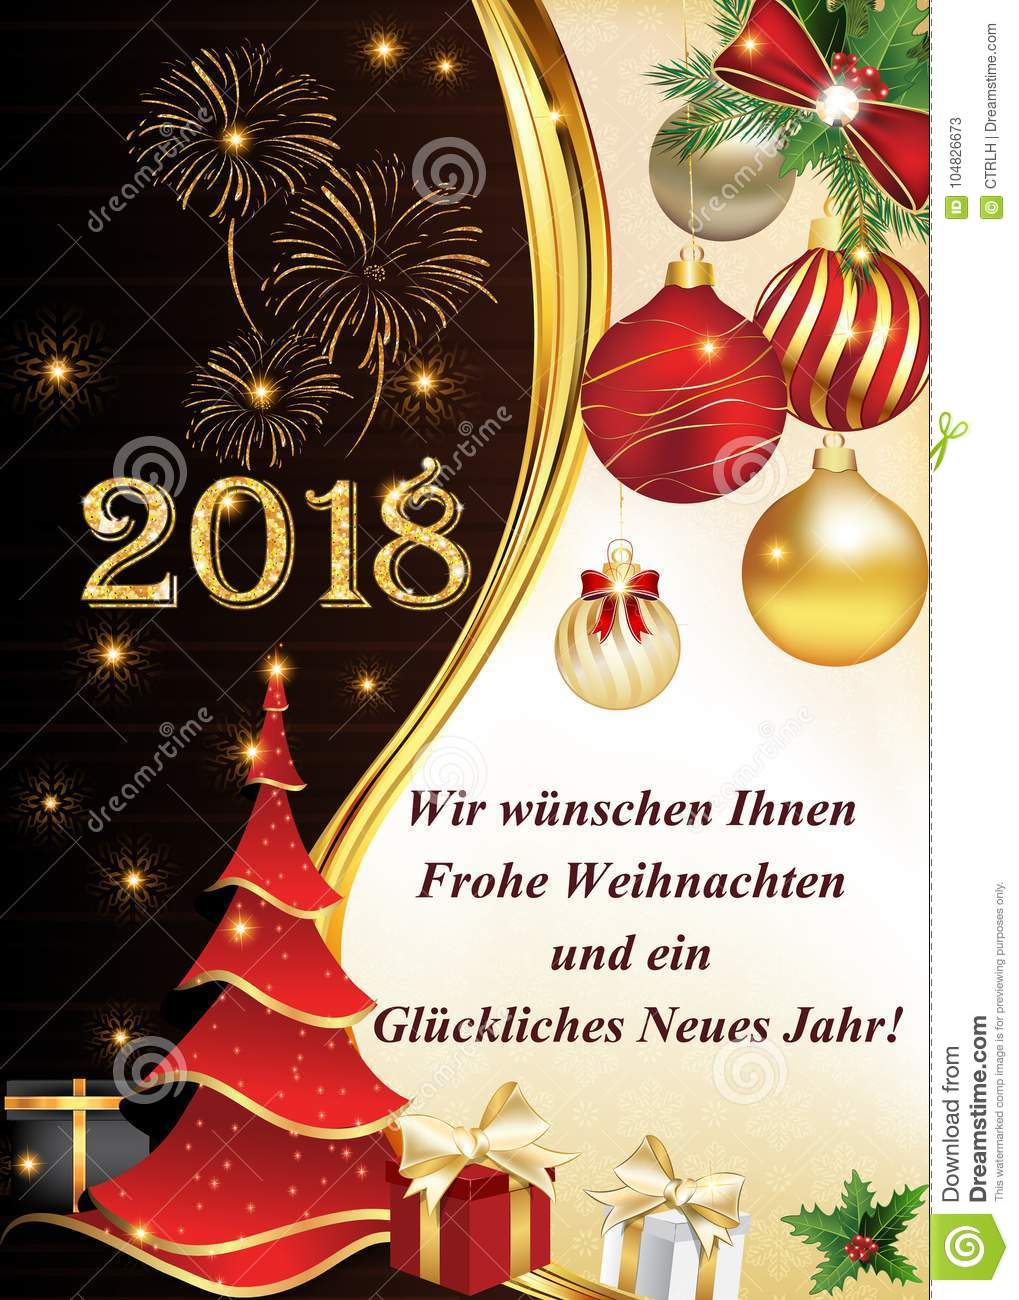 german greeting card we wish you a merry christmas and a happy new year